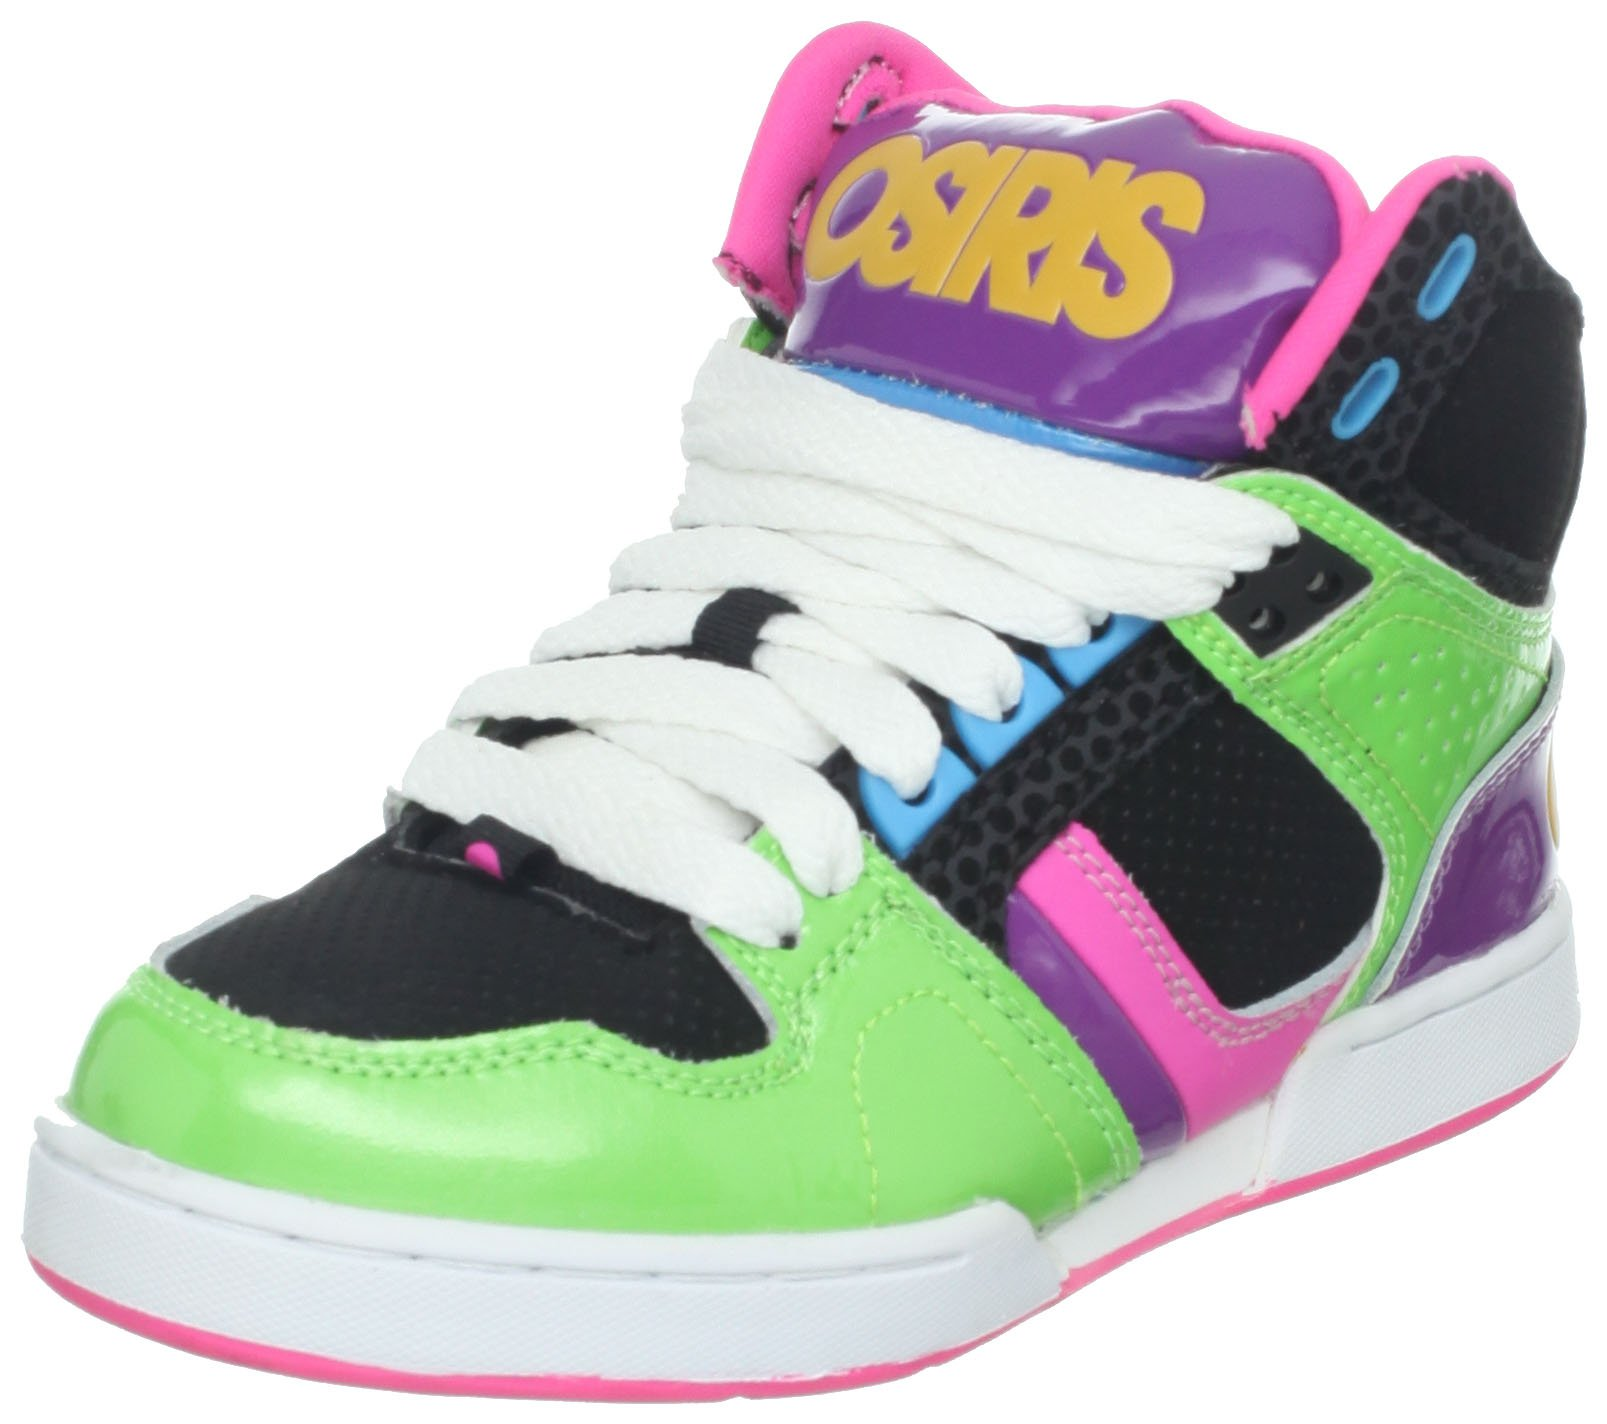 Osiris Nyc 83 SLM Skate Shoe (Little Kid/Big Kid)